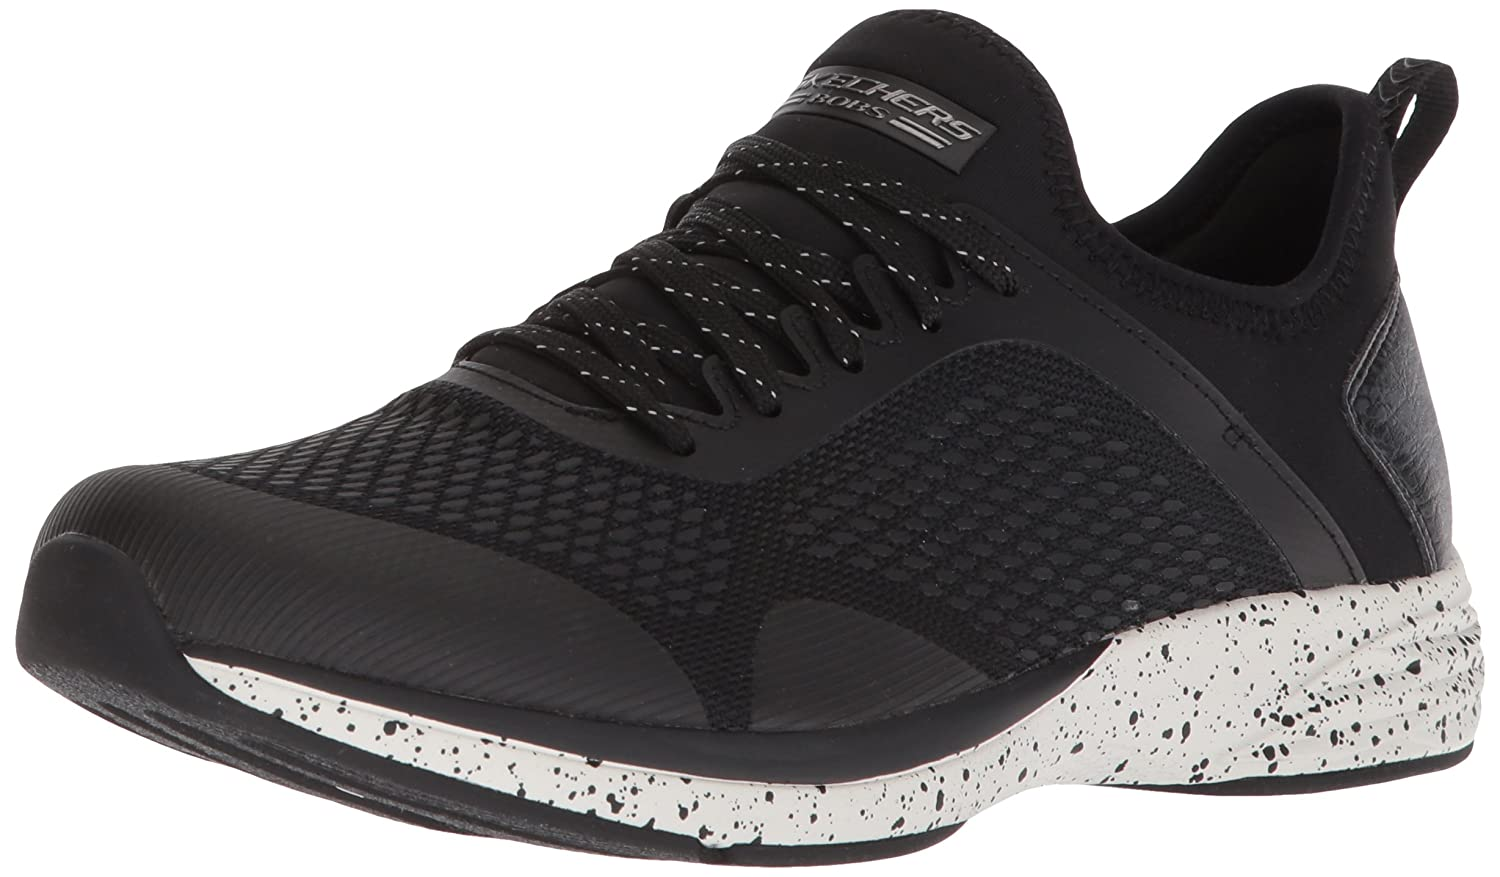 Skechers BOBS Heart from Women's Bobs Clique-Fierce Heart BOBS Sneaker B077T99X7Z 9 M US|Black 7af31d